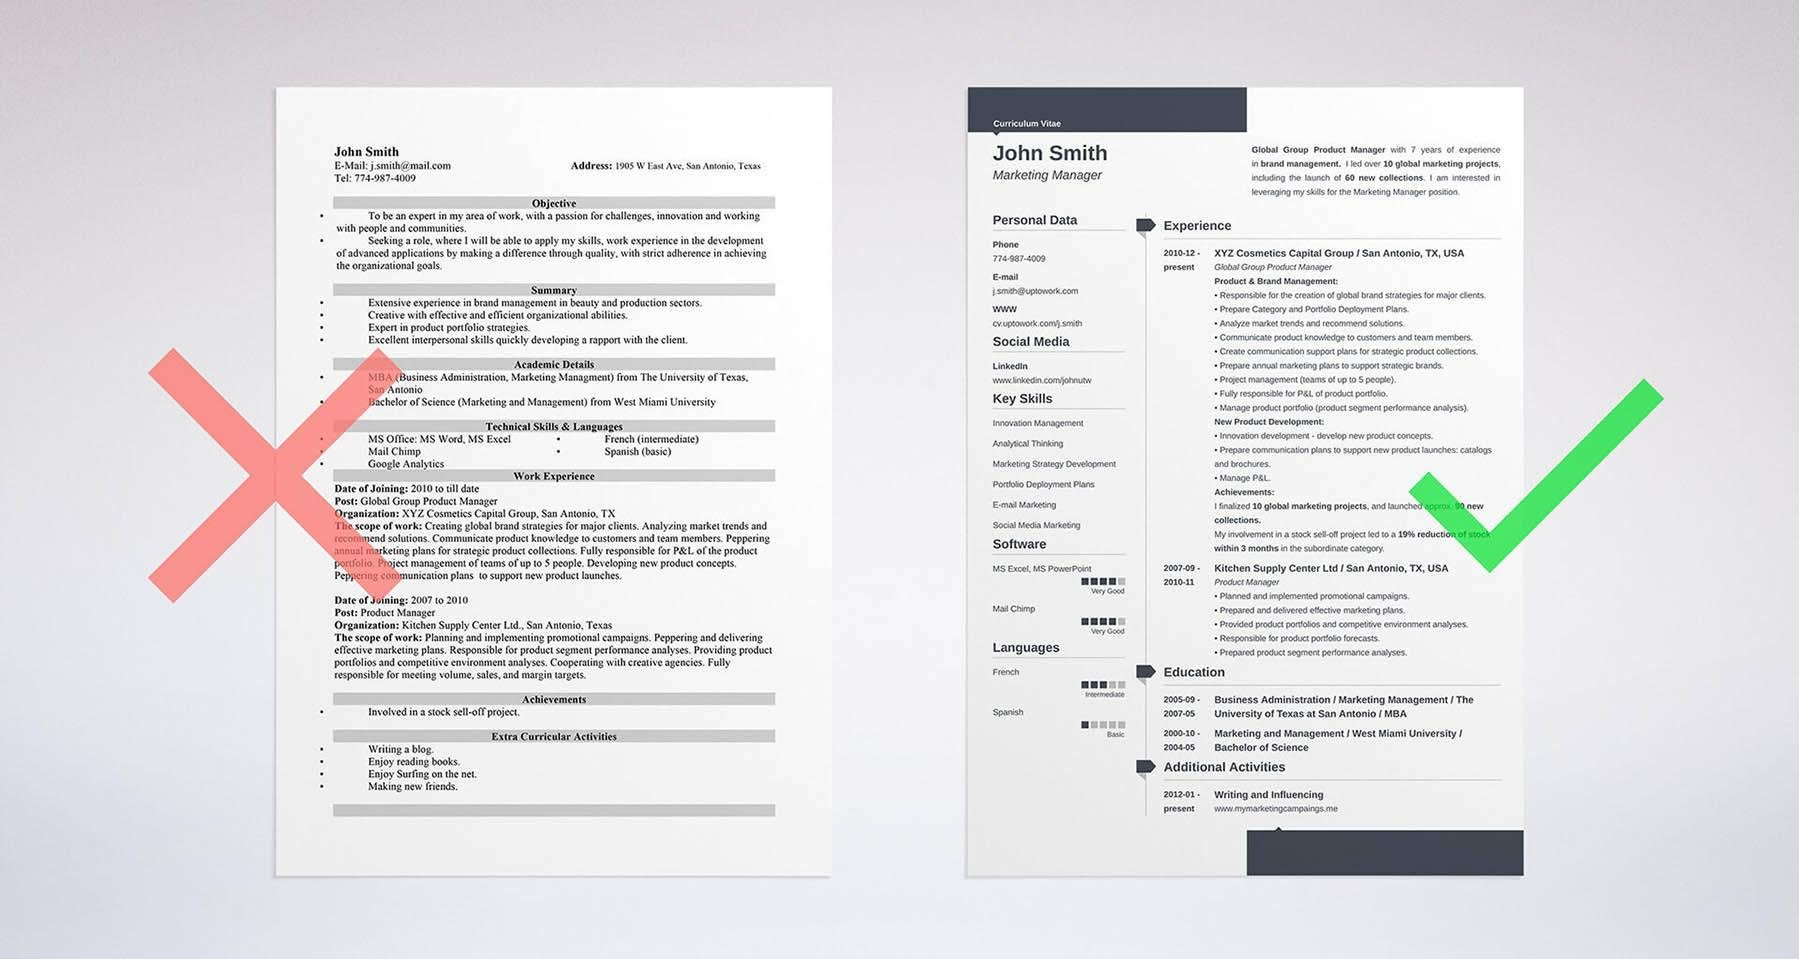 Heres An Example Of A Template From Our Resume Builder That Properly Showcases Skills On